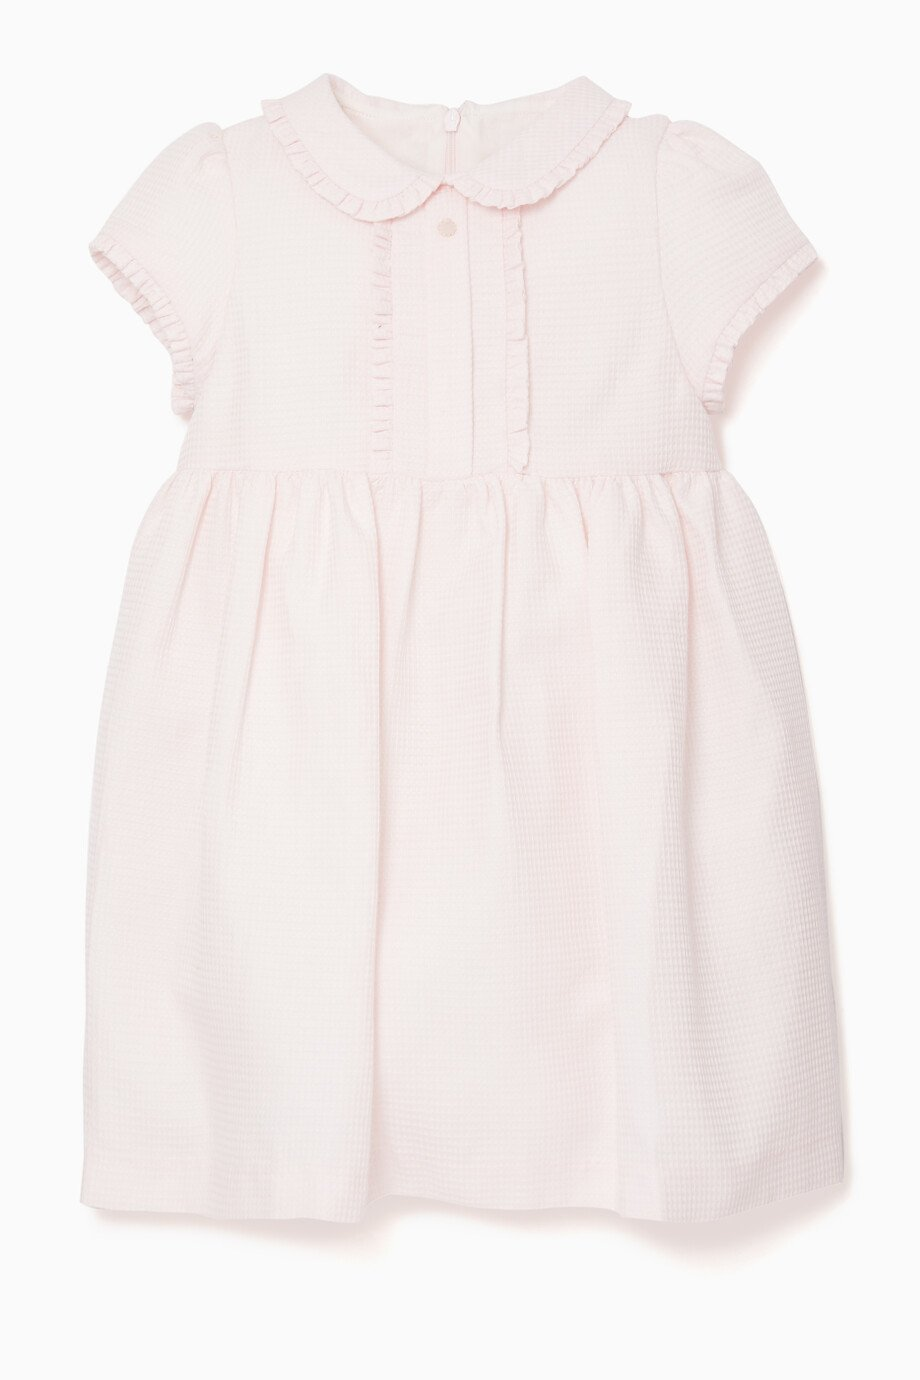 968f86ac0 Shop Patachou Pink Ruffled Peter Pan Collar Dress for Kids | Ounass